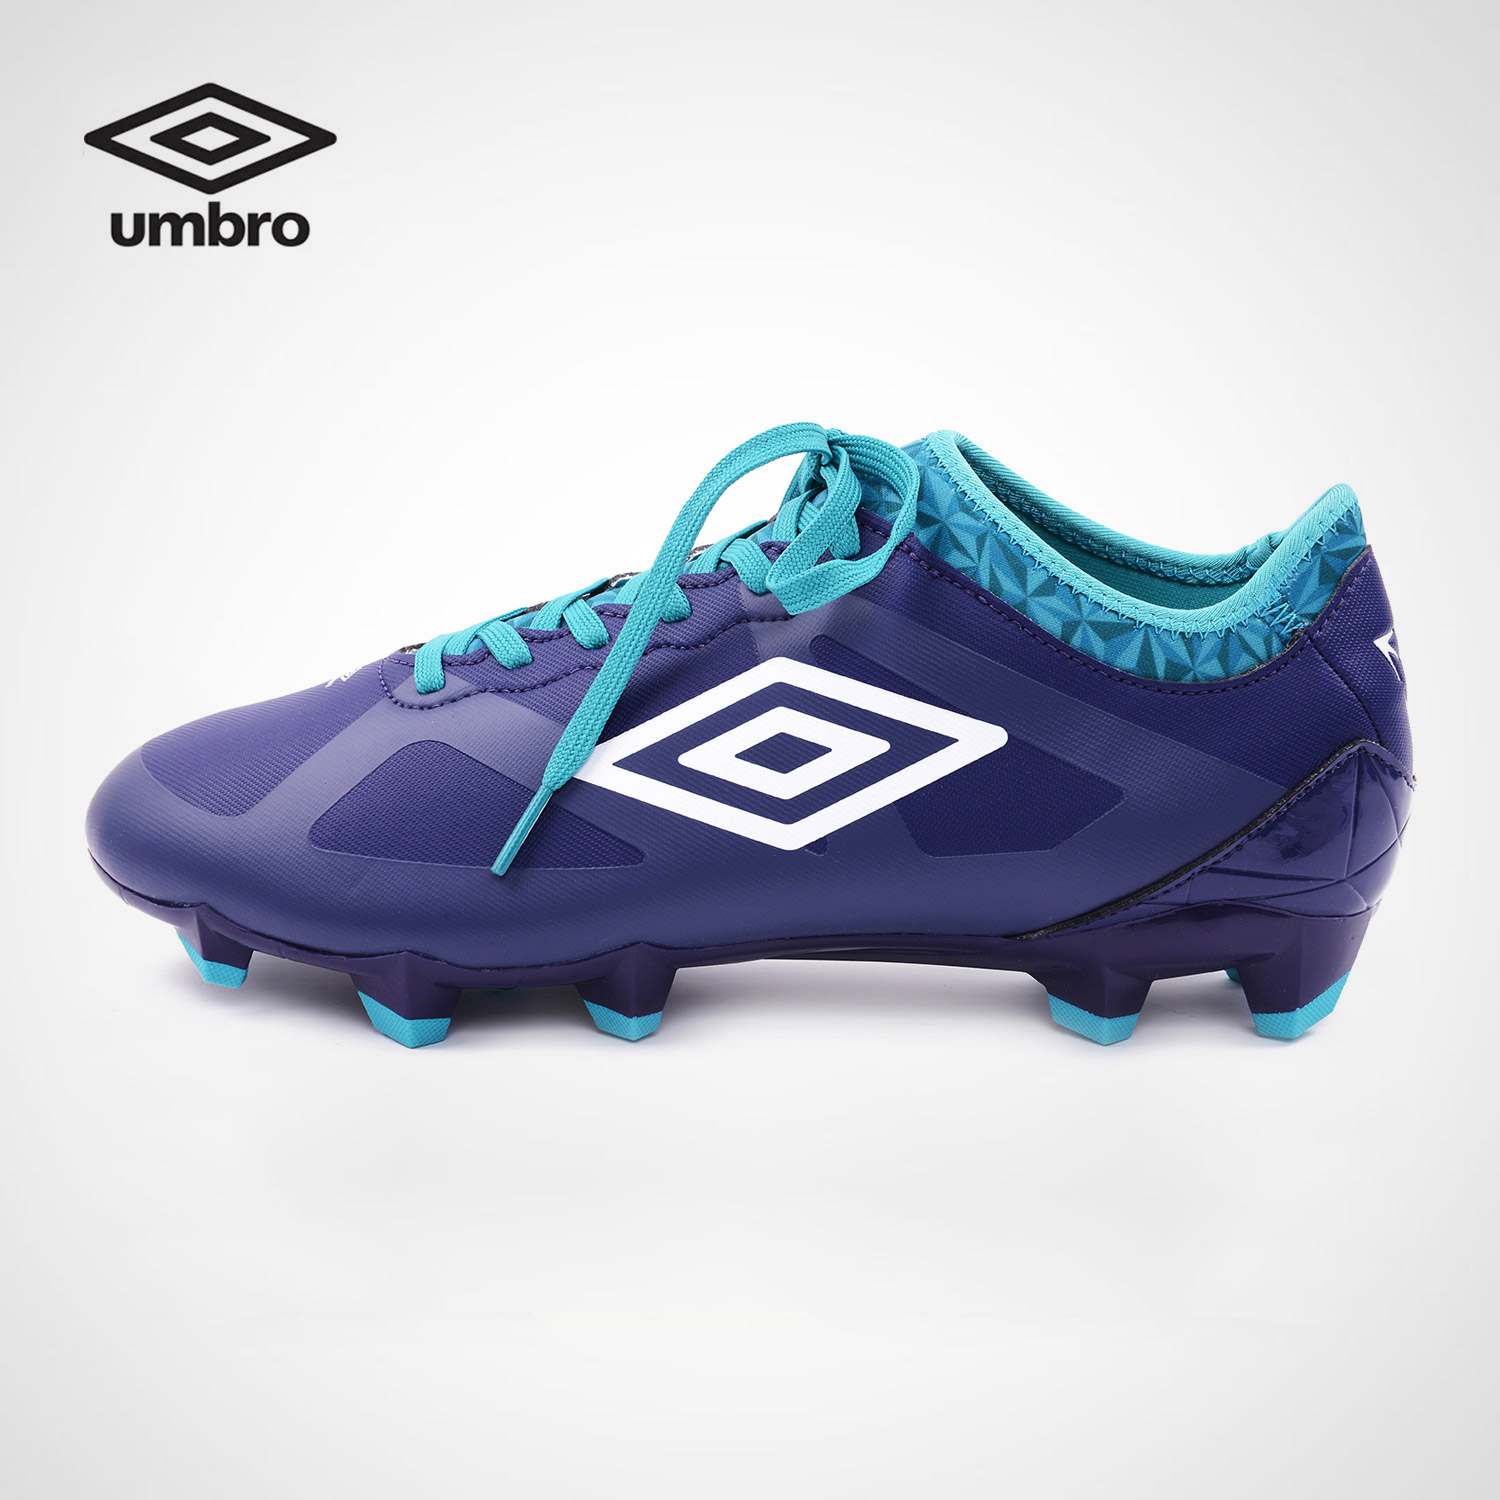 Umbro Men's SexeMare Professional Soccer Cleats 2017 Newest Mens FG Football Boots Soccer Shoes Ucc90153 tiebao professional boys fg